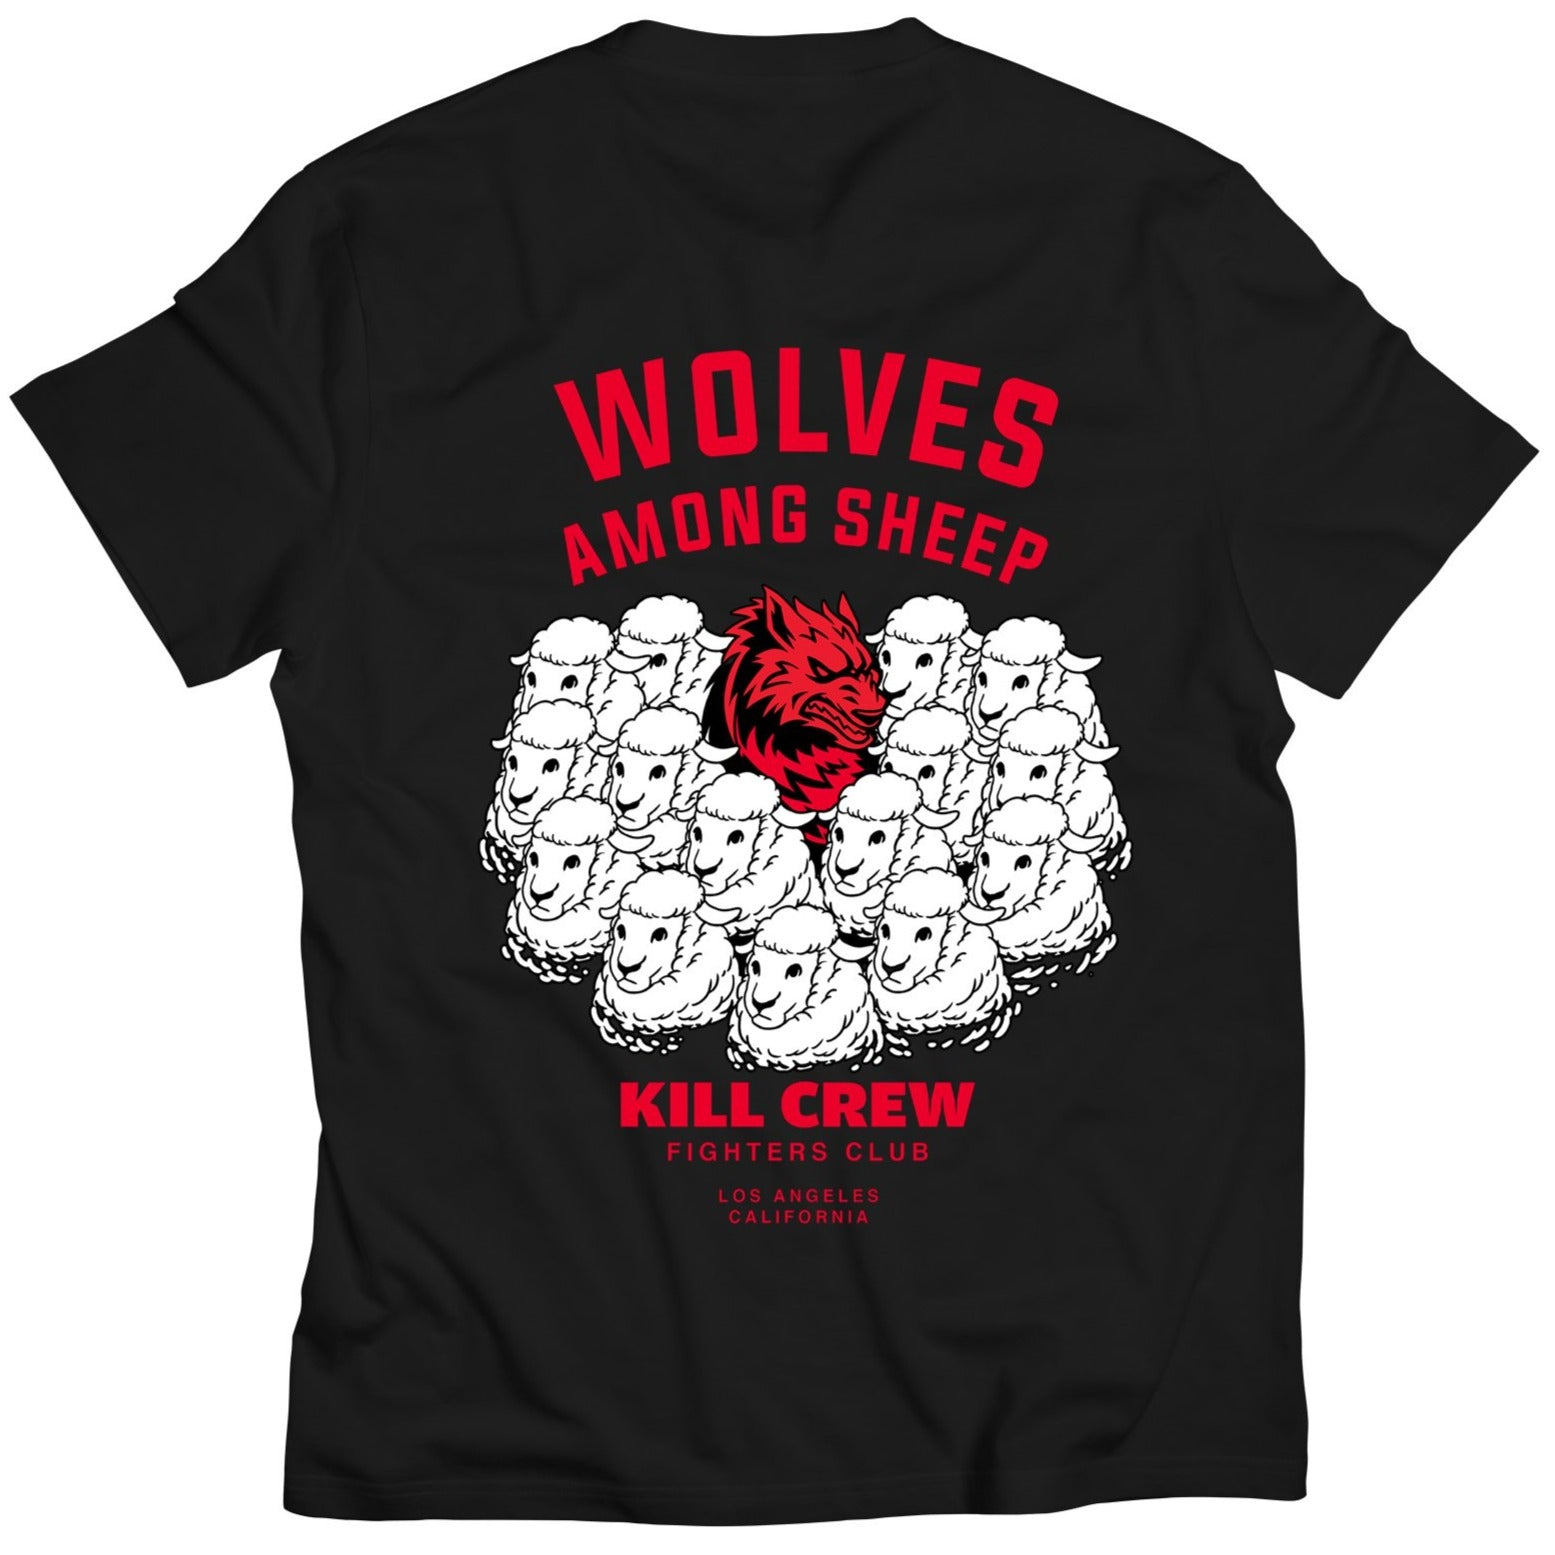 WOLVES AMONG SHEEP T-SHIRT v2 - BLACK